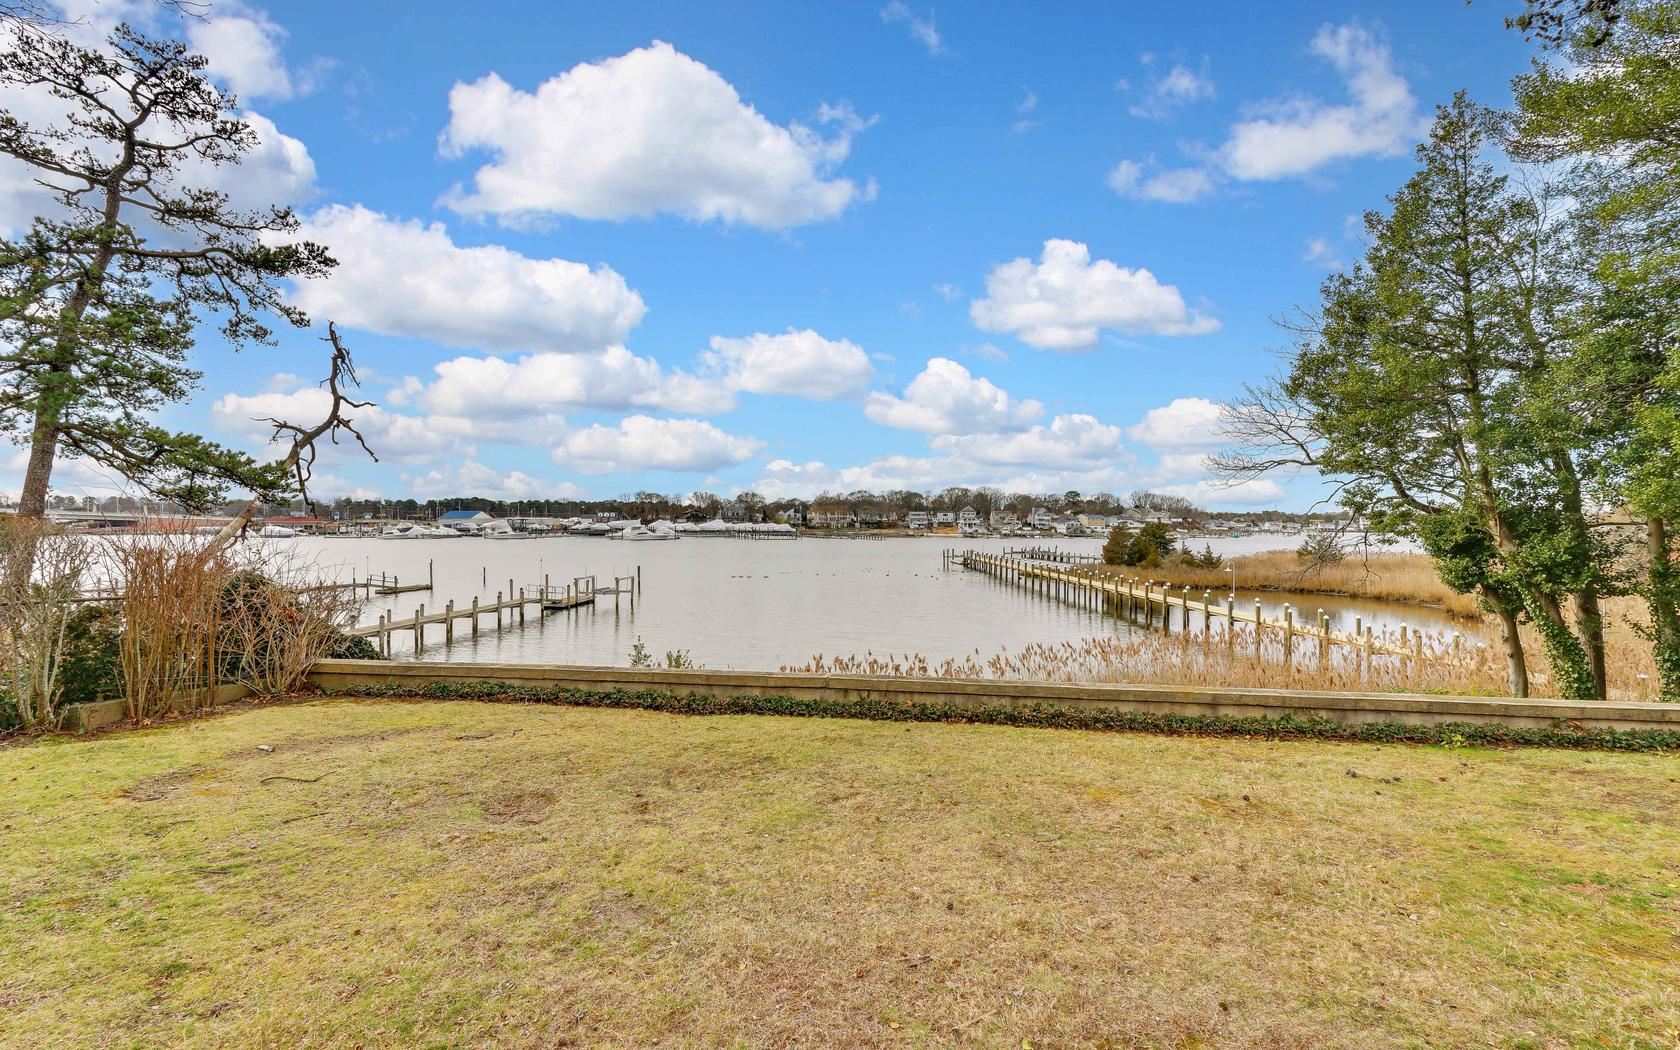 Single Family Home for Sale at Tranquil Manasquan Riverfront 2639 River Rd Wall, New Jersey, 08736 United States